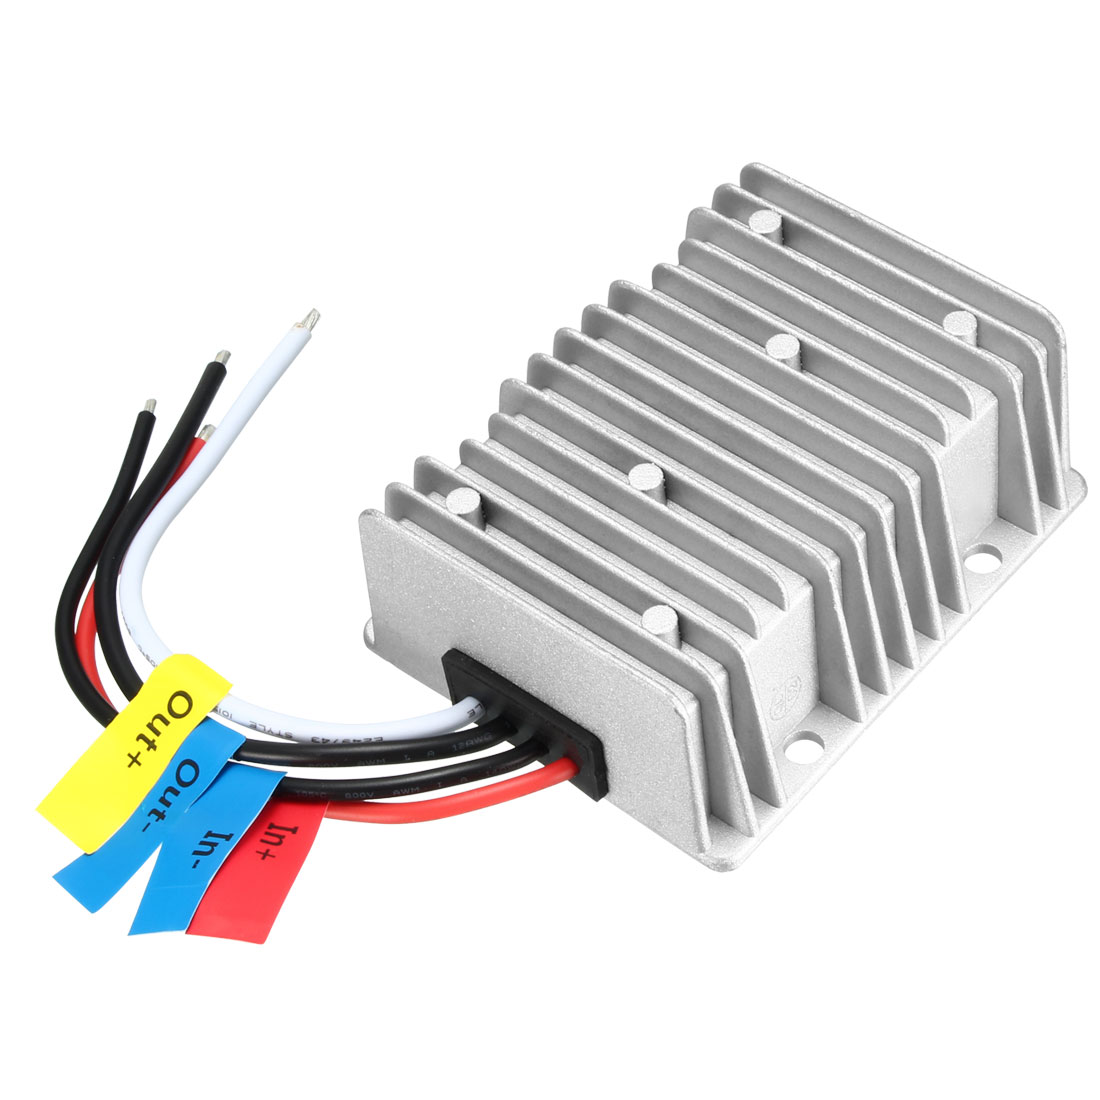 BIG-Size Voltage Buck Converter Regulator DC 24V Step-Down to DC 12V 30A 360W Waterproof Power Transformer